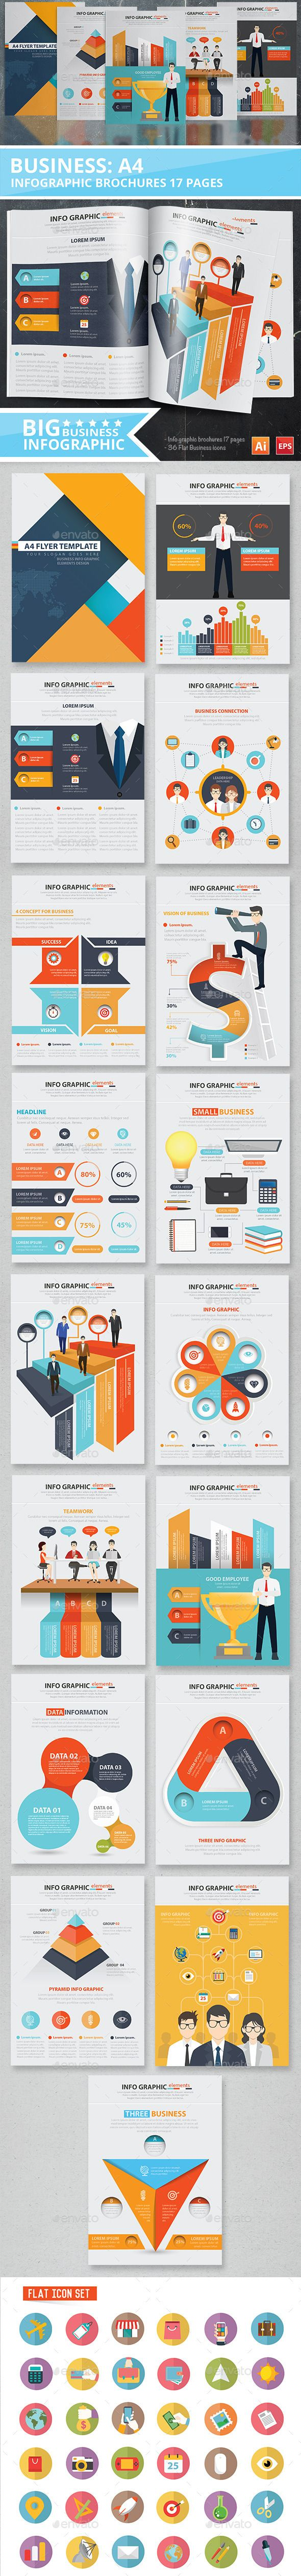 Business Infographic Design 17 Pages Template Vector EPS, AI illustrator #design Download: http://graphicriver.net/item/business-infographic-design-17-pages/12361700?ref=ksioks